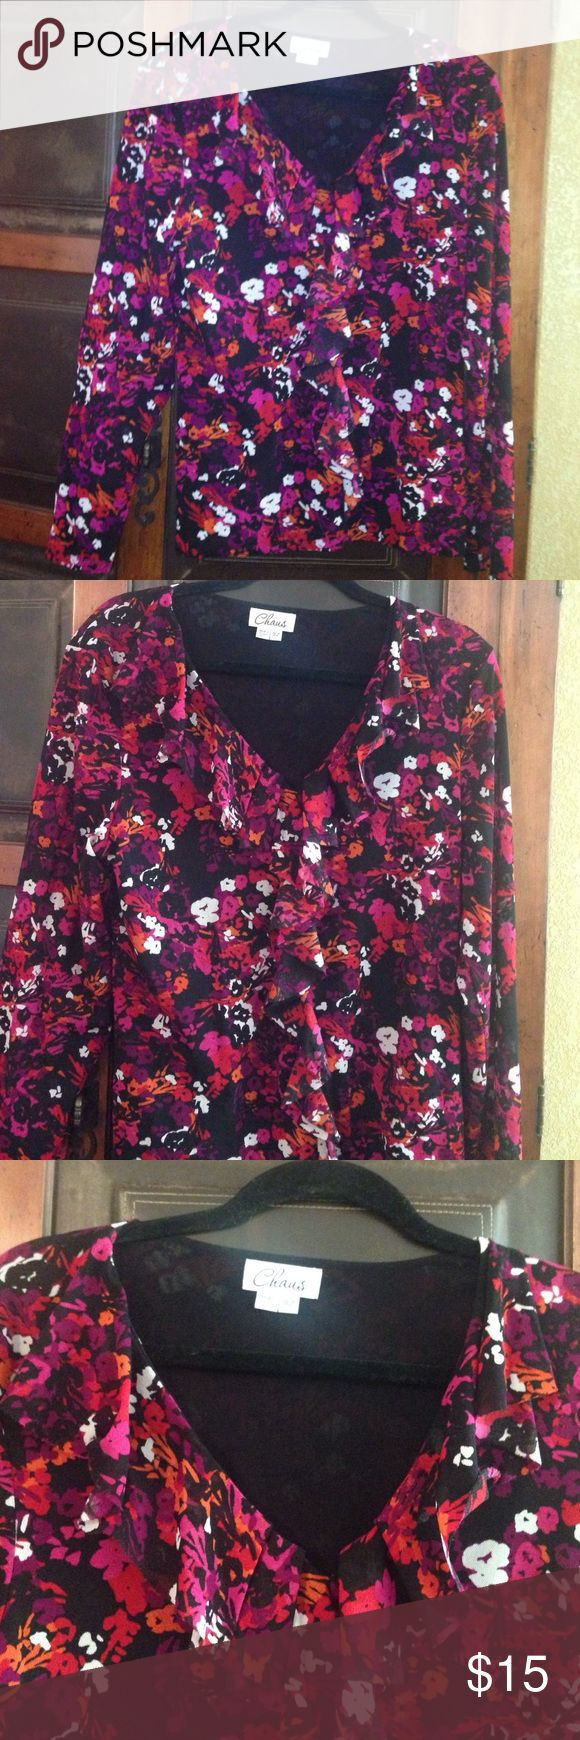 CHAUS Colorful Blouse Vibrant colored fuchsia, orange, and magenta floral long sleeved blouse// Size XL// 100% Nylon Chaus Tops Blouses